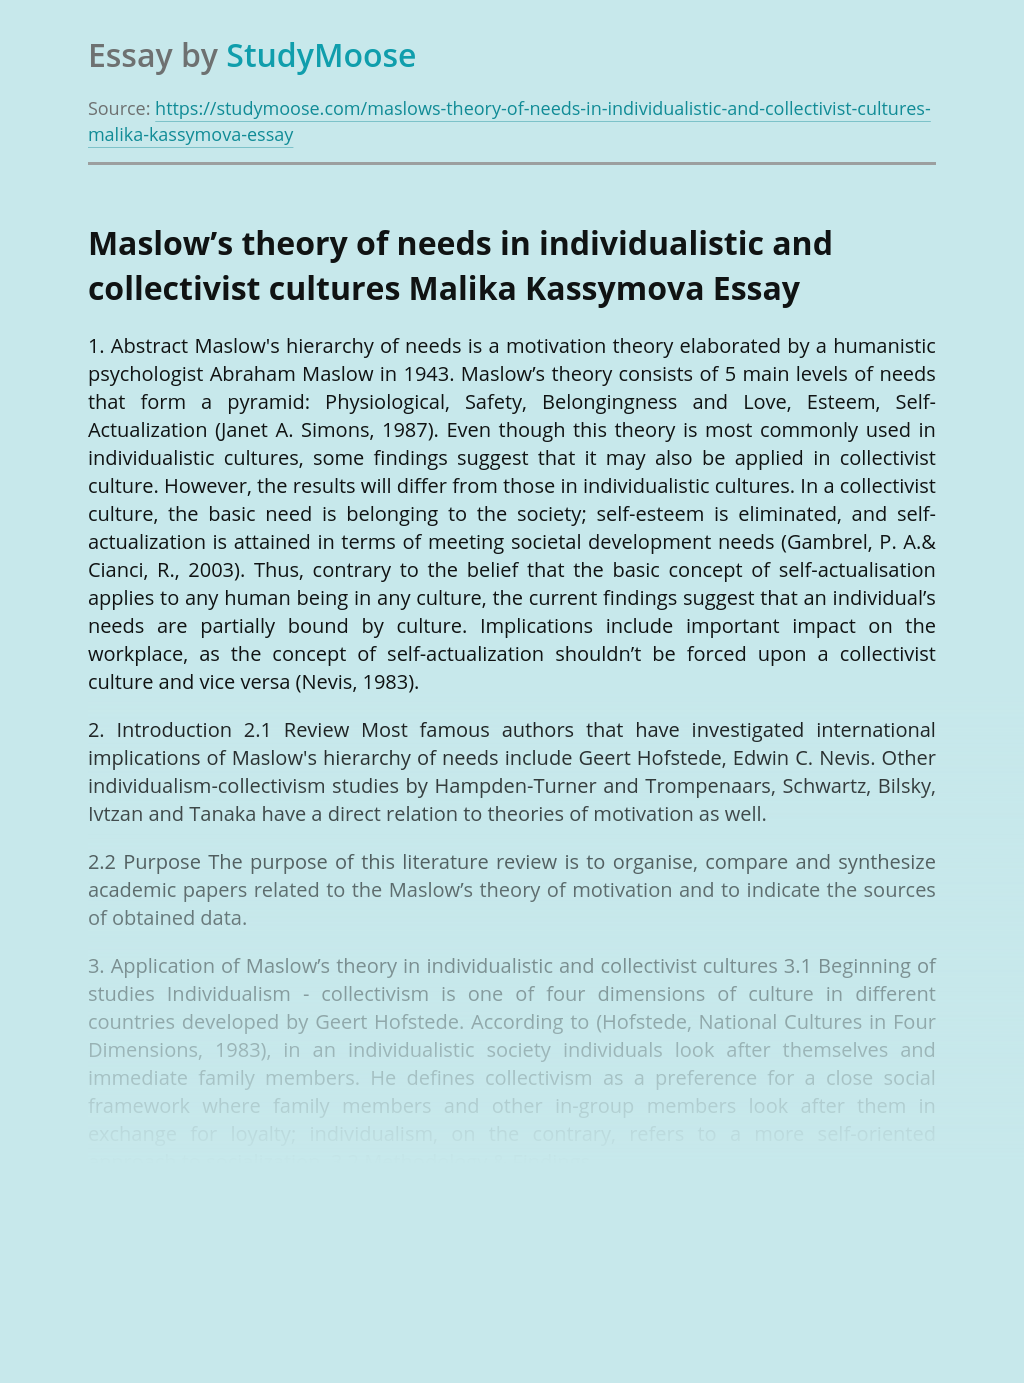 Maslow's theory of needs in individualistic and collectivist cultures Malika Kassymova